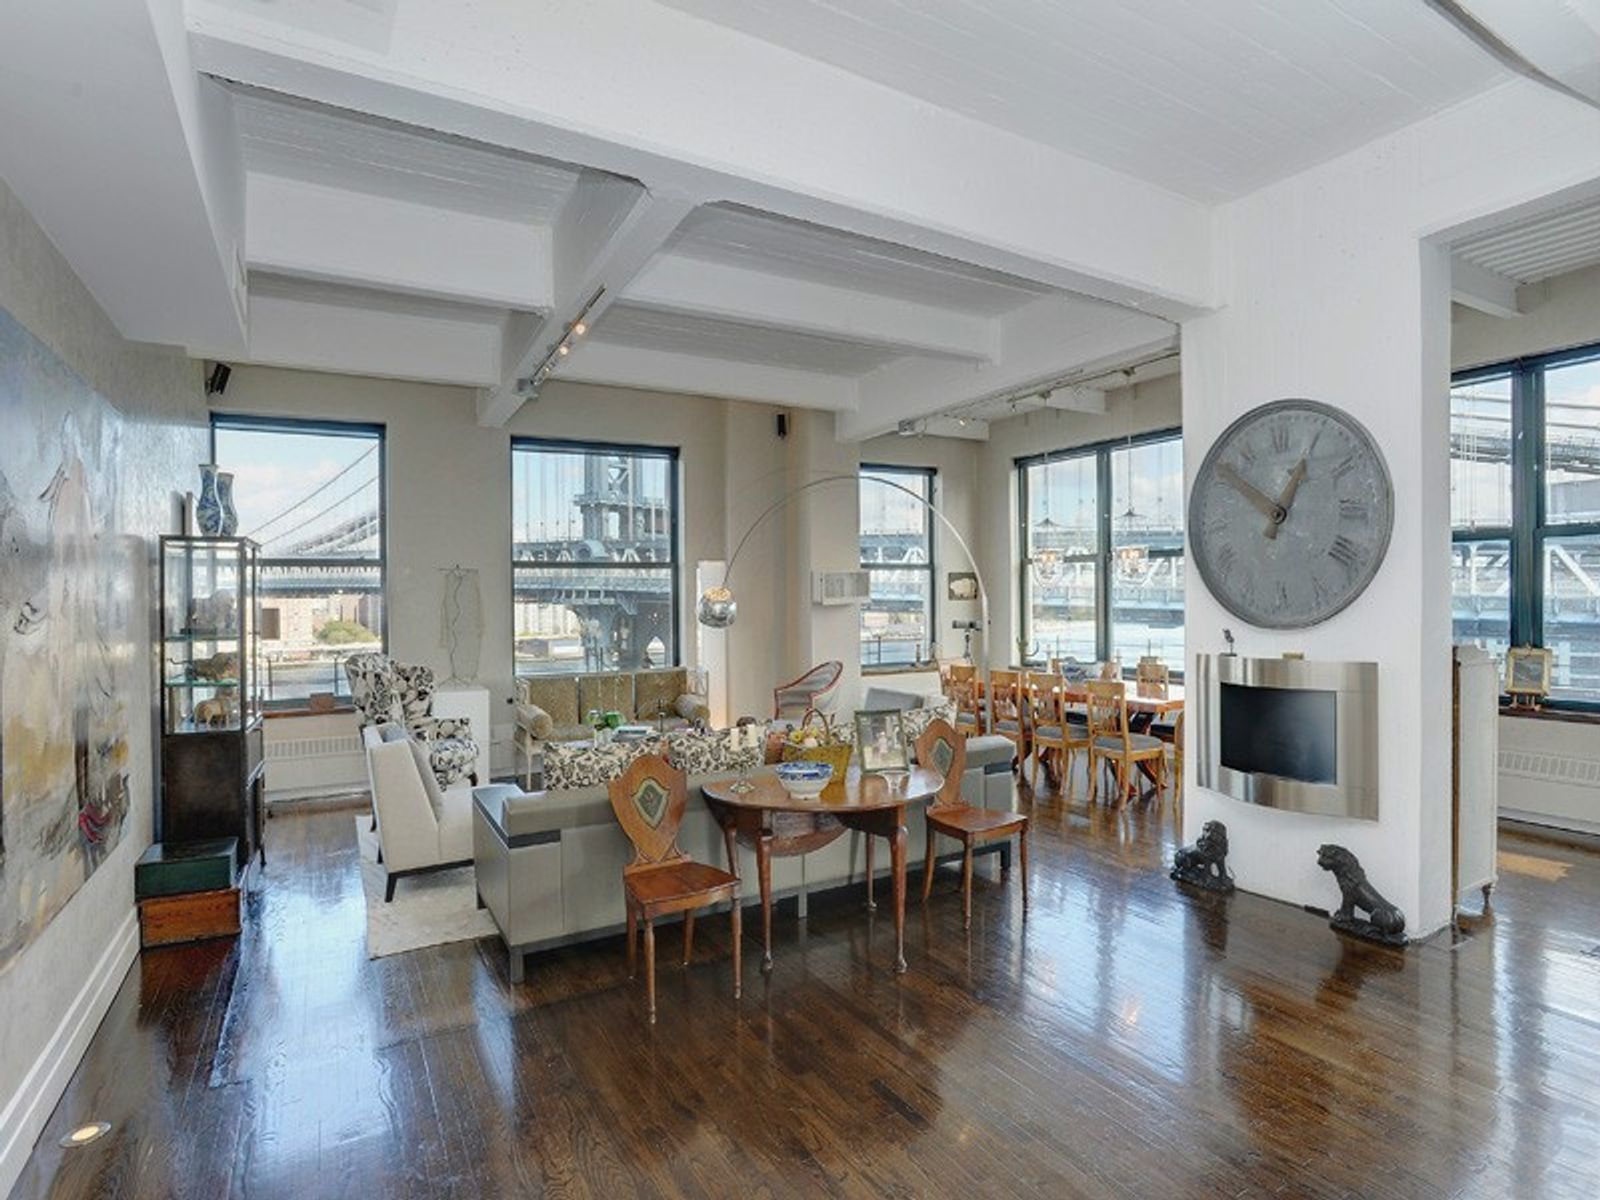 Stunning Corner Loft with Bridge View, Brooklyn NY Condominium - New York City Real Estate